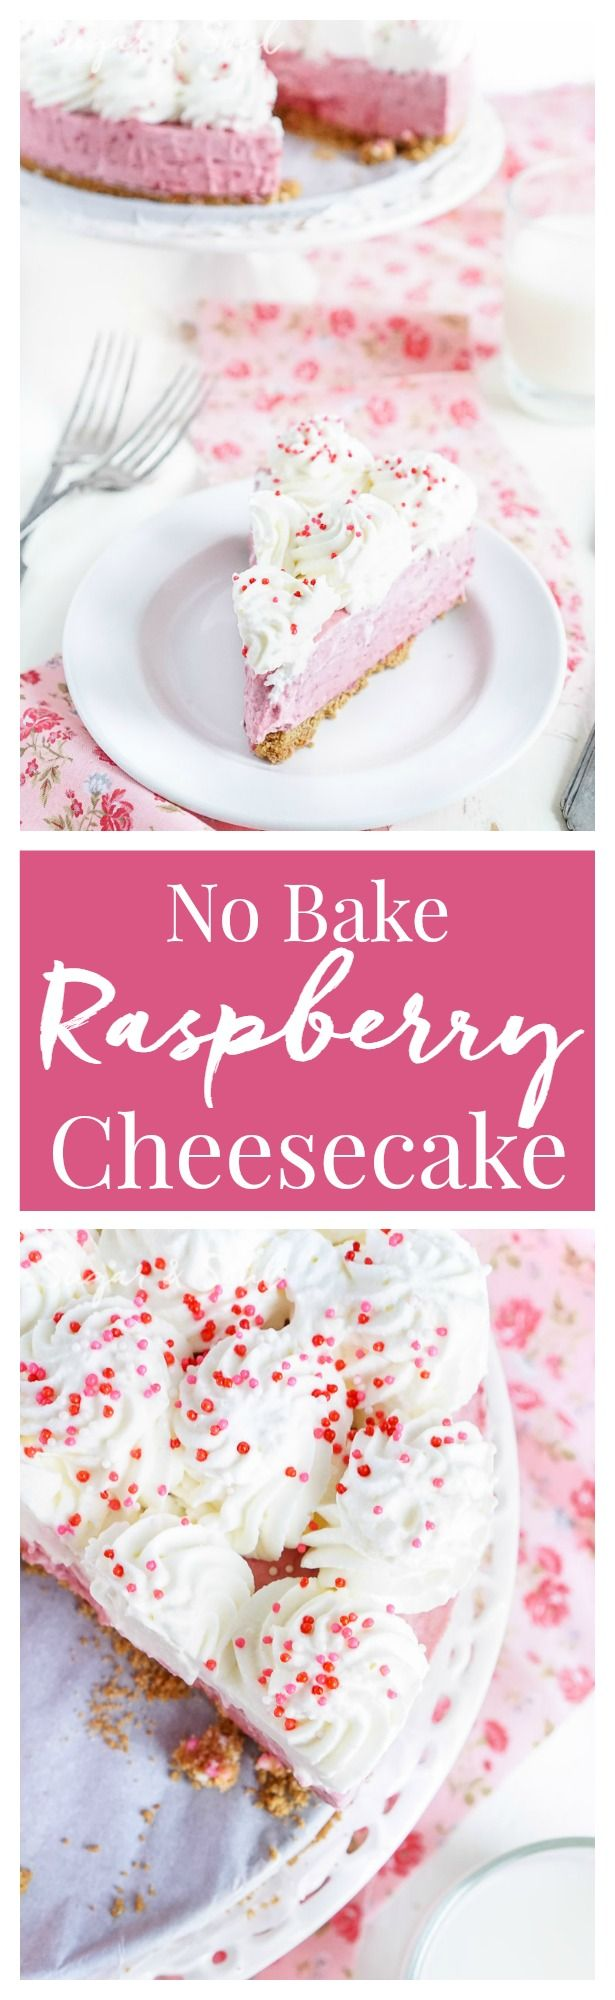 This No Bake Raspberry Cheesecake is light and creamy and loaded with tart raspberries!